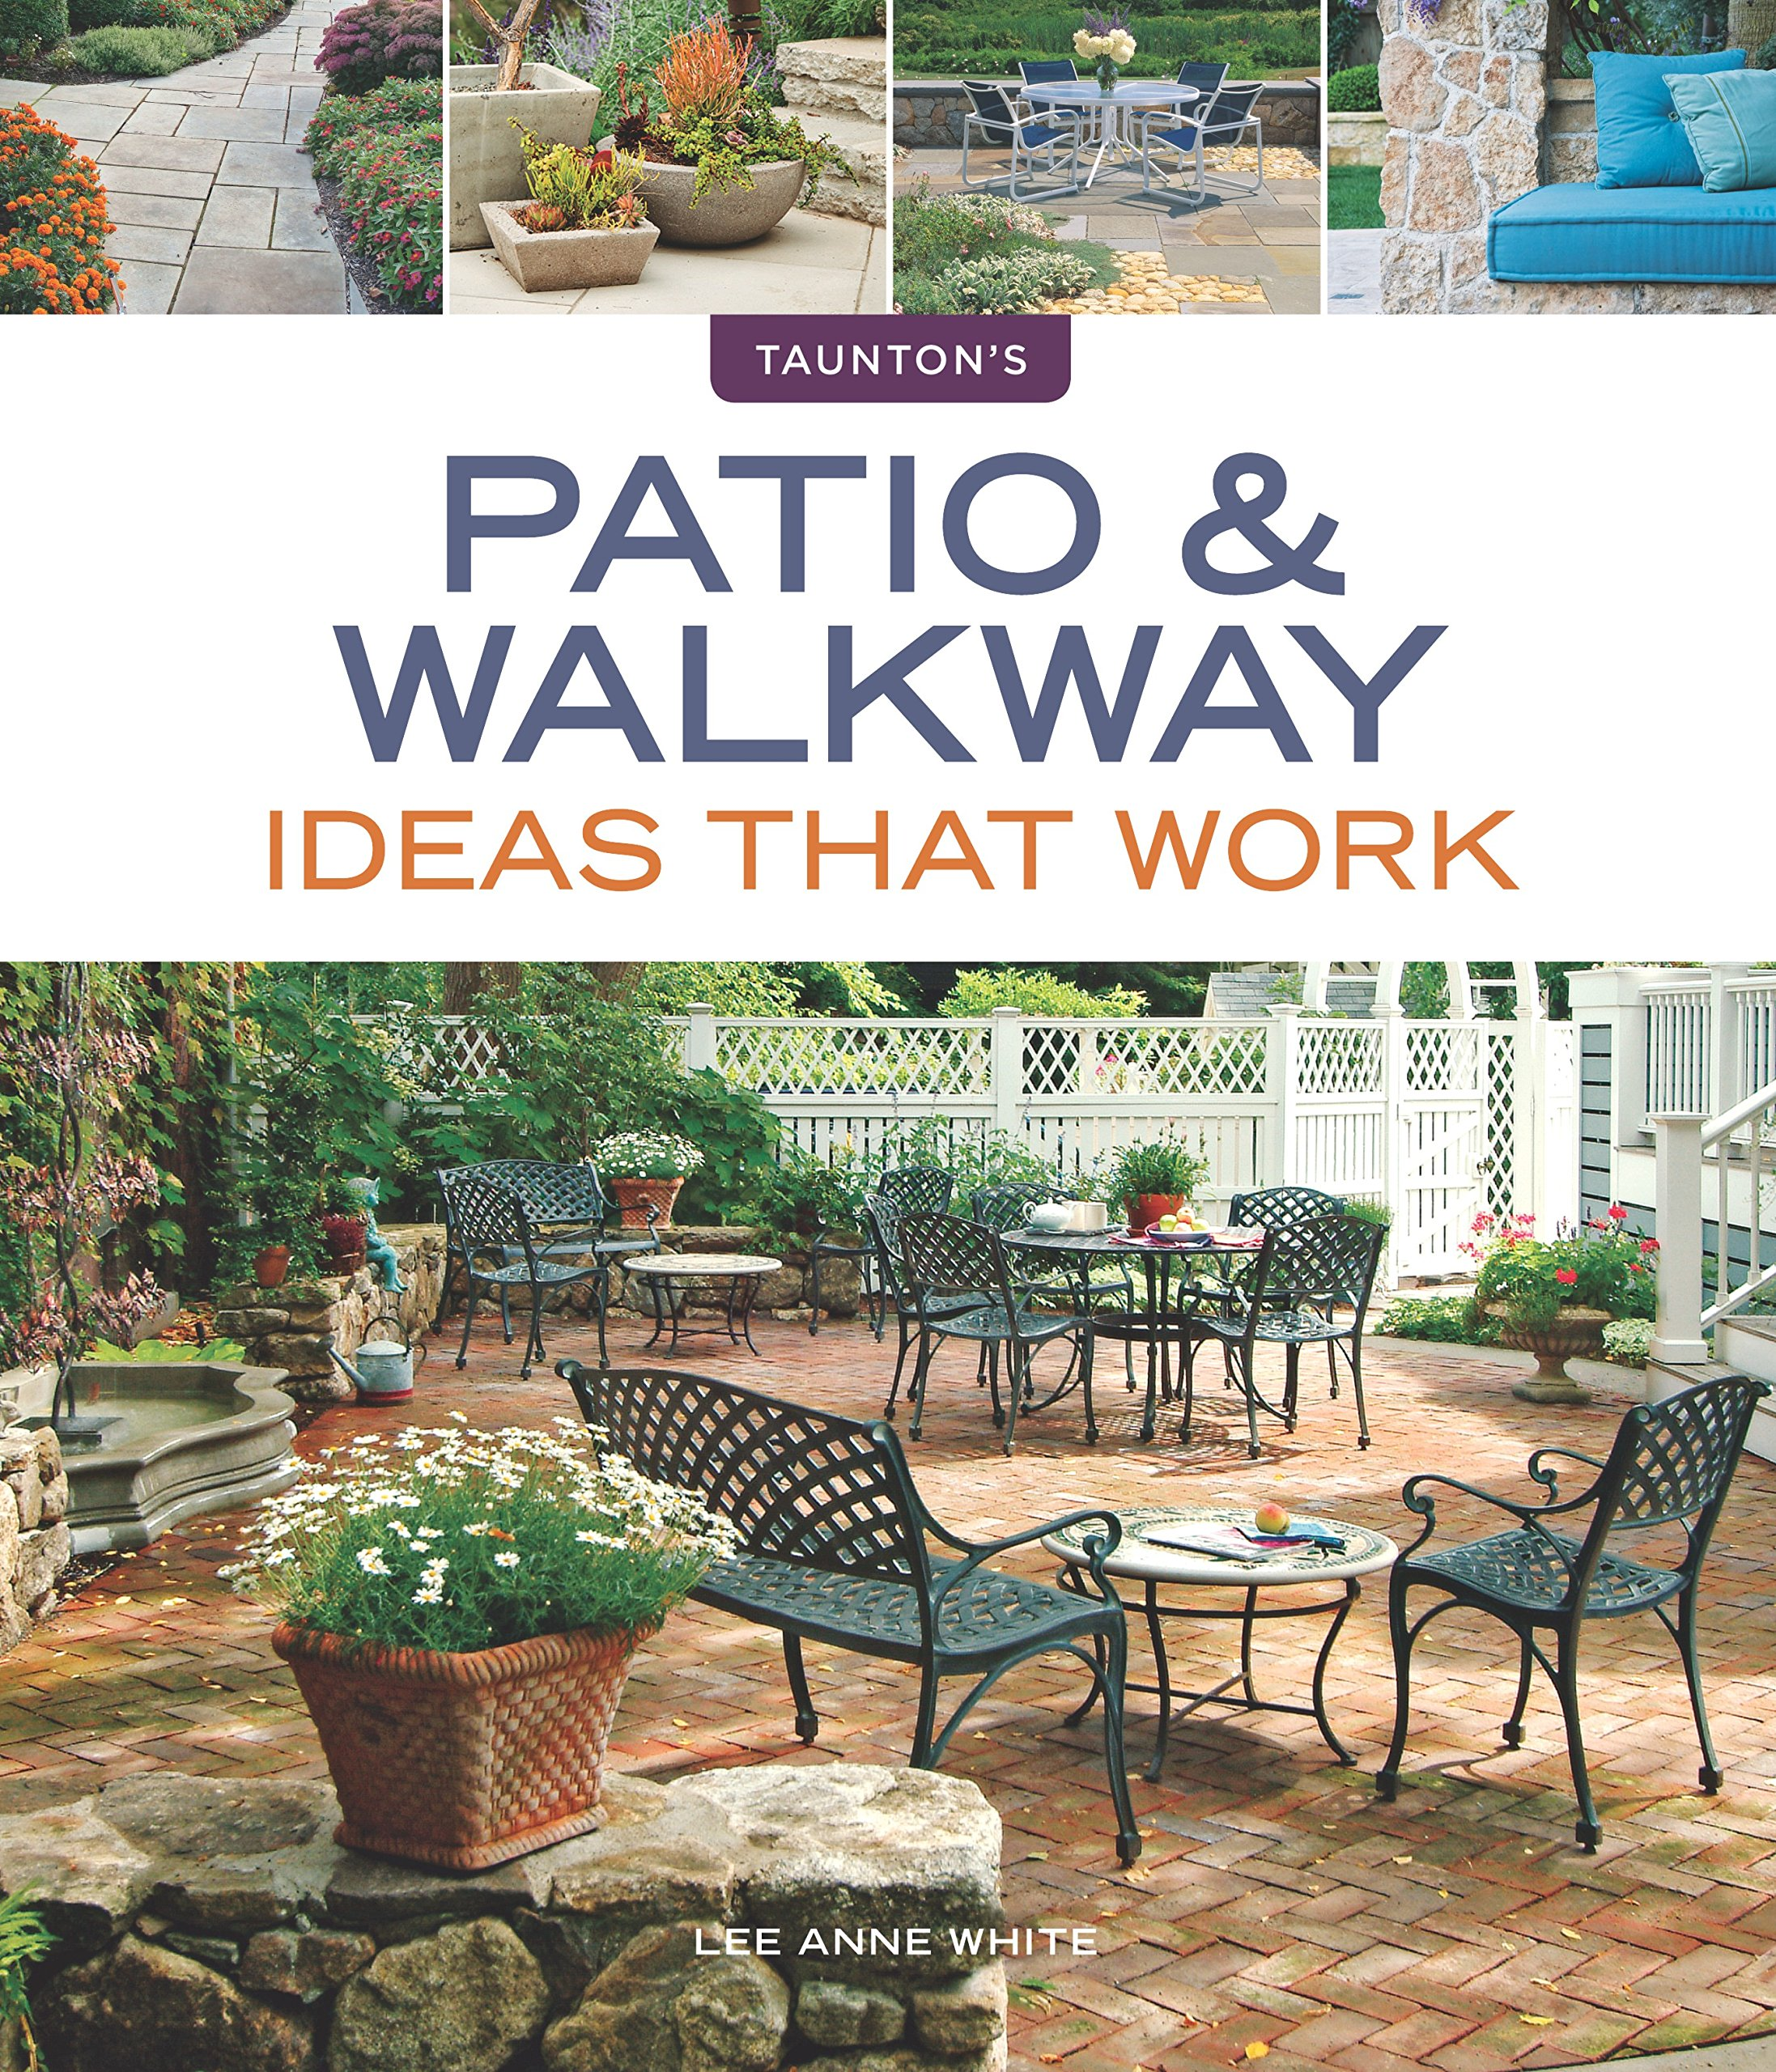 Patio & walkway ideas that work / Lee Anne White